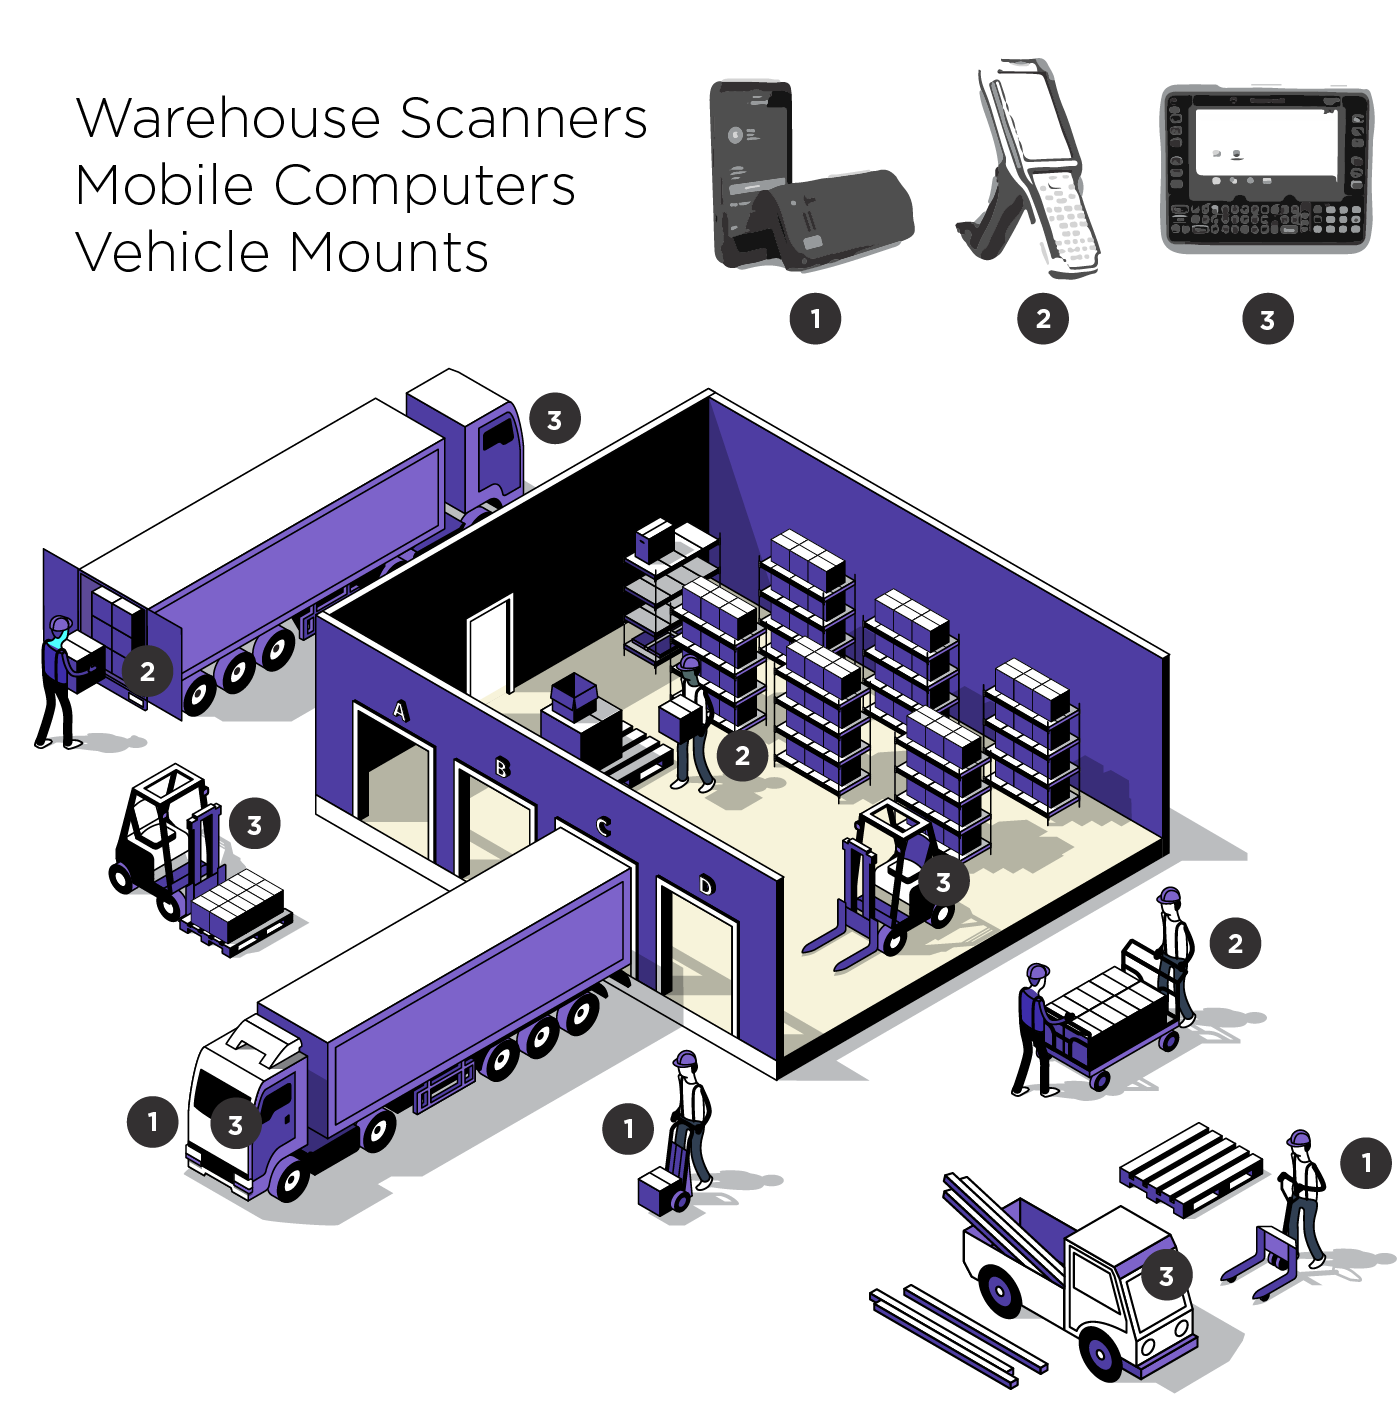 Warehouse Scanner Repair Illustration of AIDC Technology in a DC